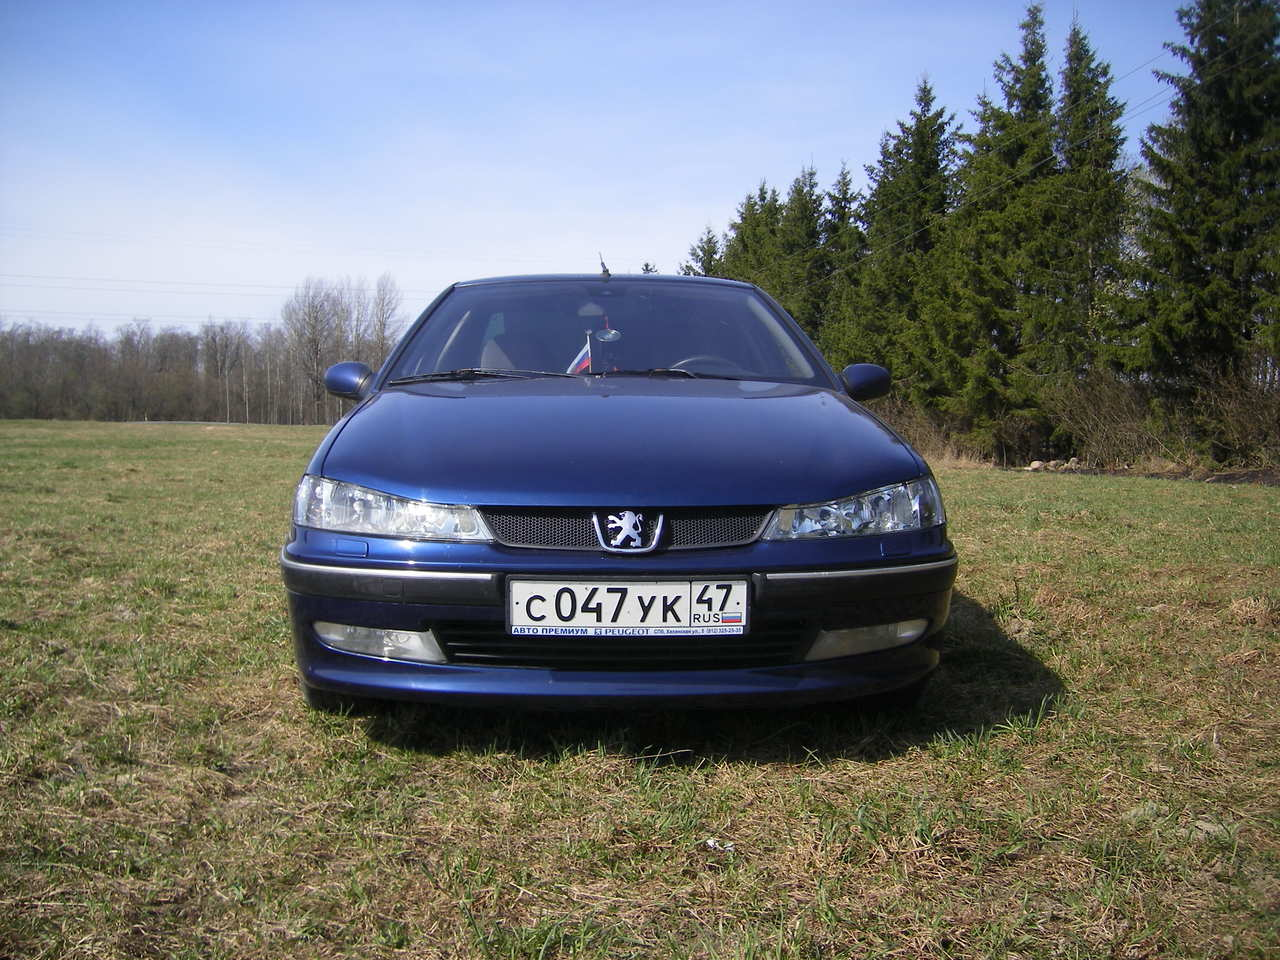 used 2002 peugeot 406 photos 1800cc gasoline ff automatic for sale. Black Bedroom Furniture Sets. Home Design Ideas